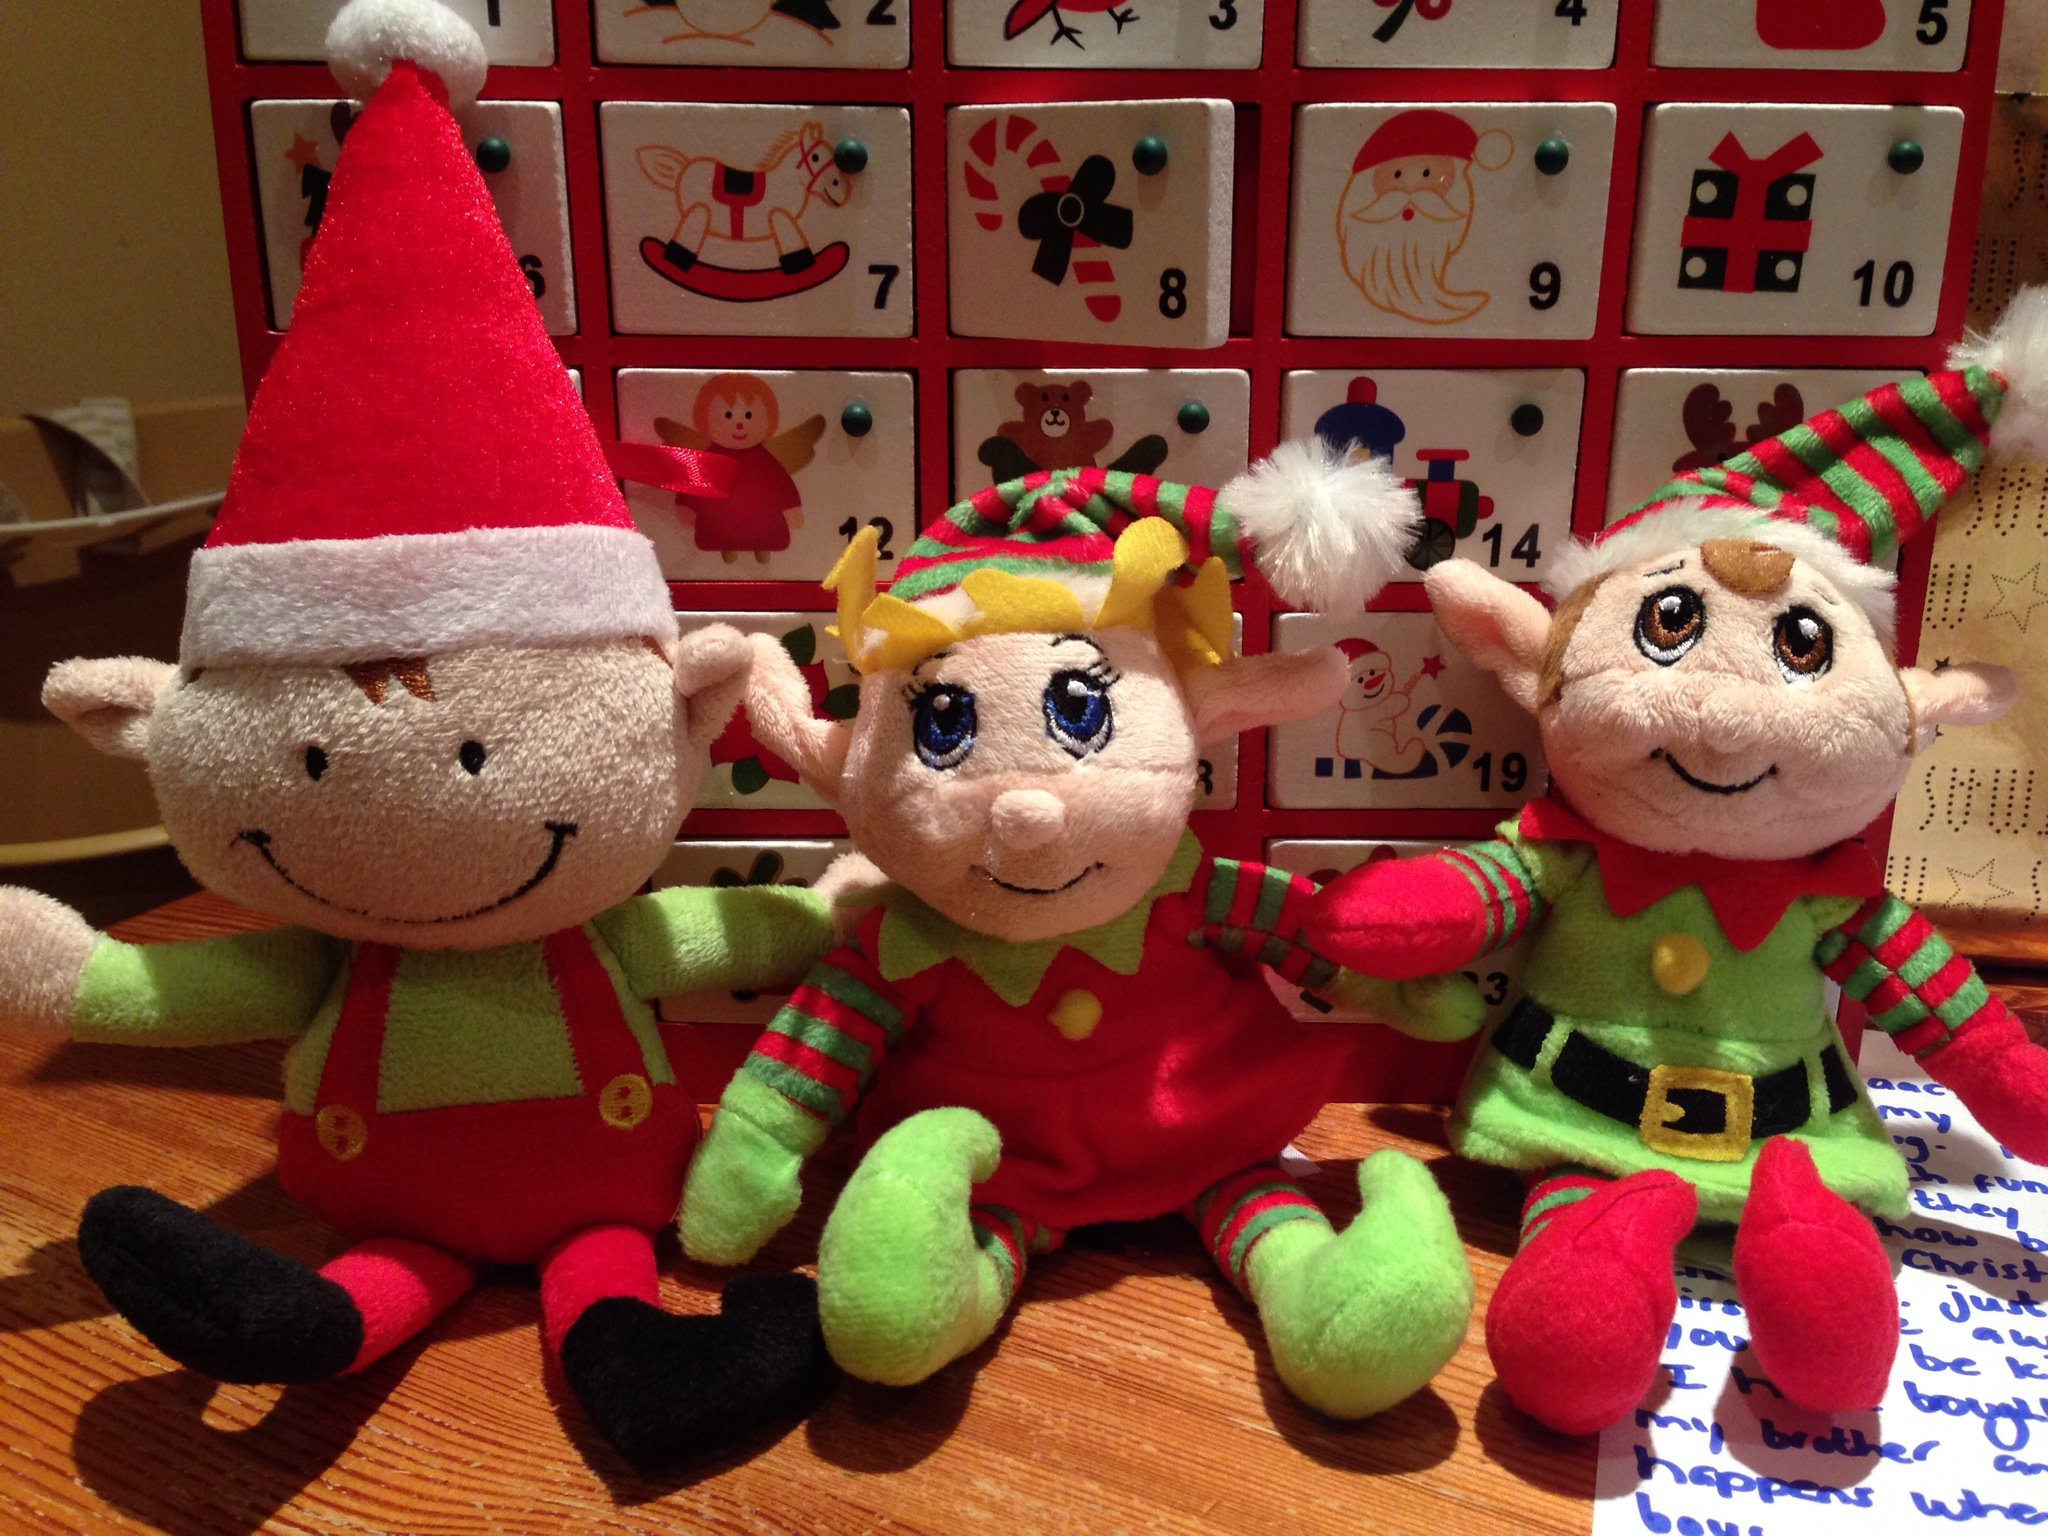 Our elves have arrived!